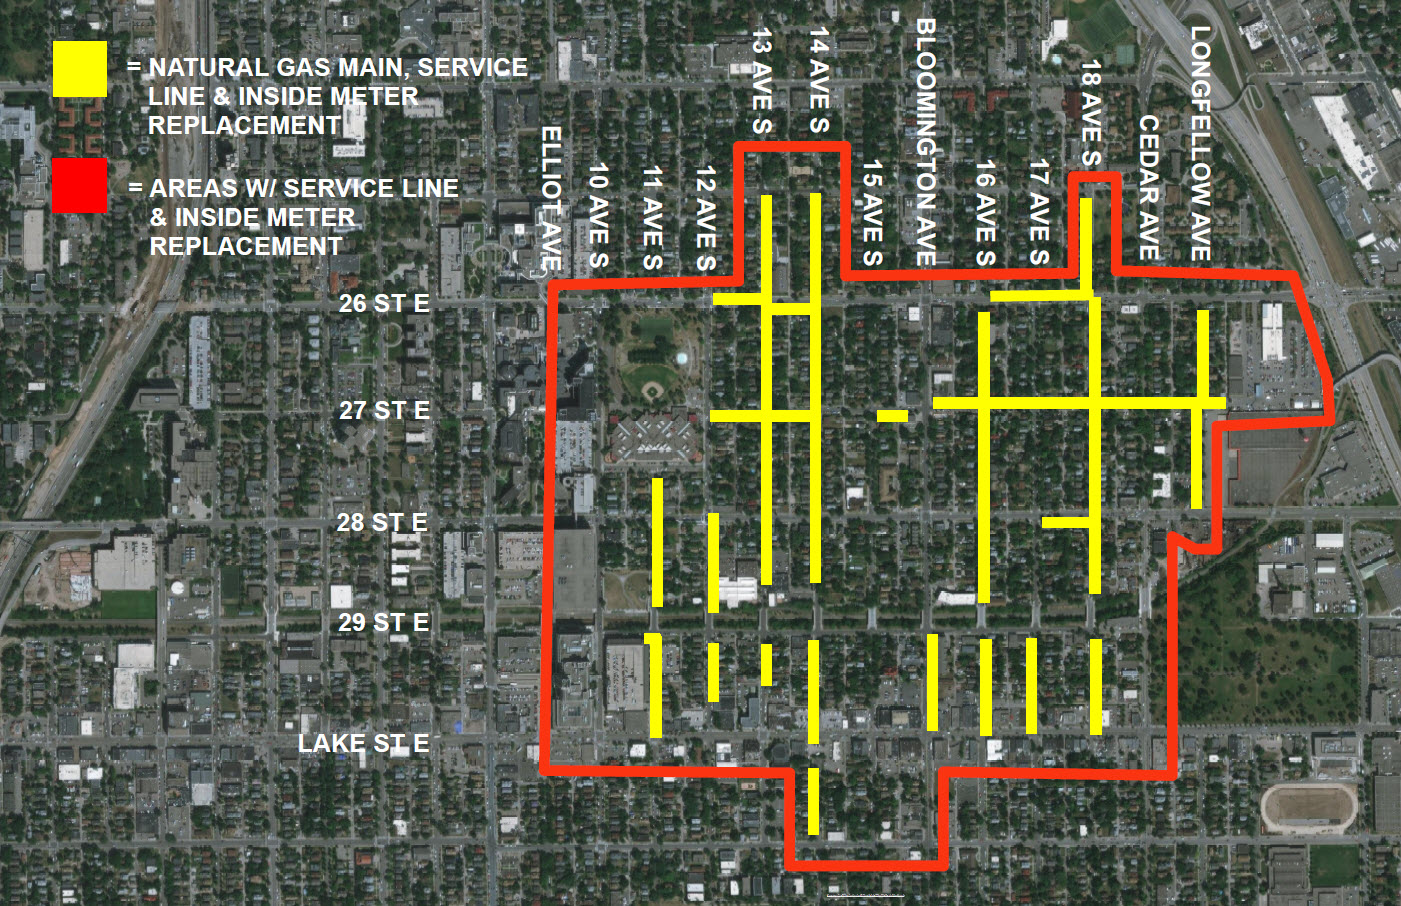 CenterPoint Energy Map of Mpls Phillips Neighborhood 91668198, 91248291.jpg